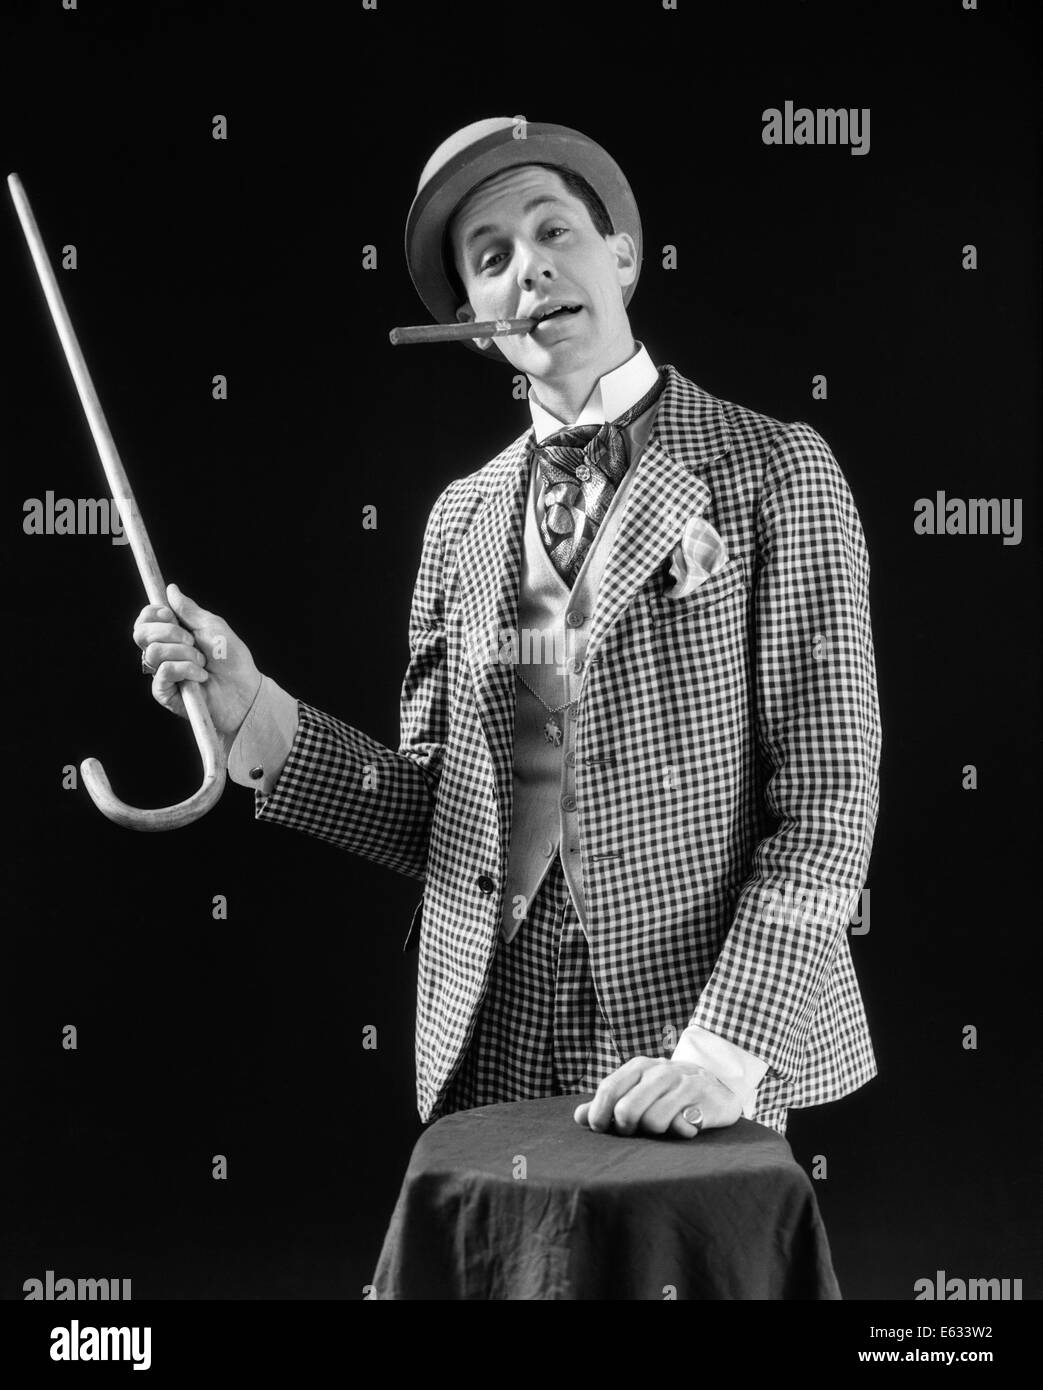 4f26258371f 1910s 1920s CHARACTER CON MAN BARKER BOWLER HAT LOUD VAUDEVILLE TYPE  CLOTHES POINTING CANE SMOKING CIGAR CONFIDENCE GAME